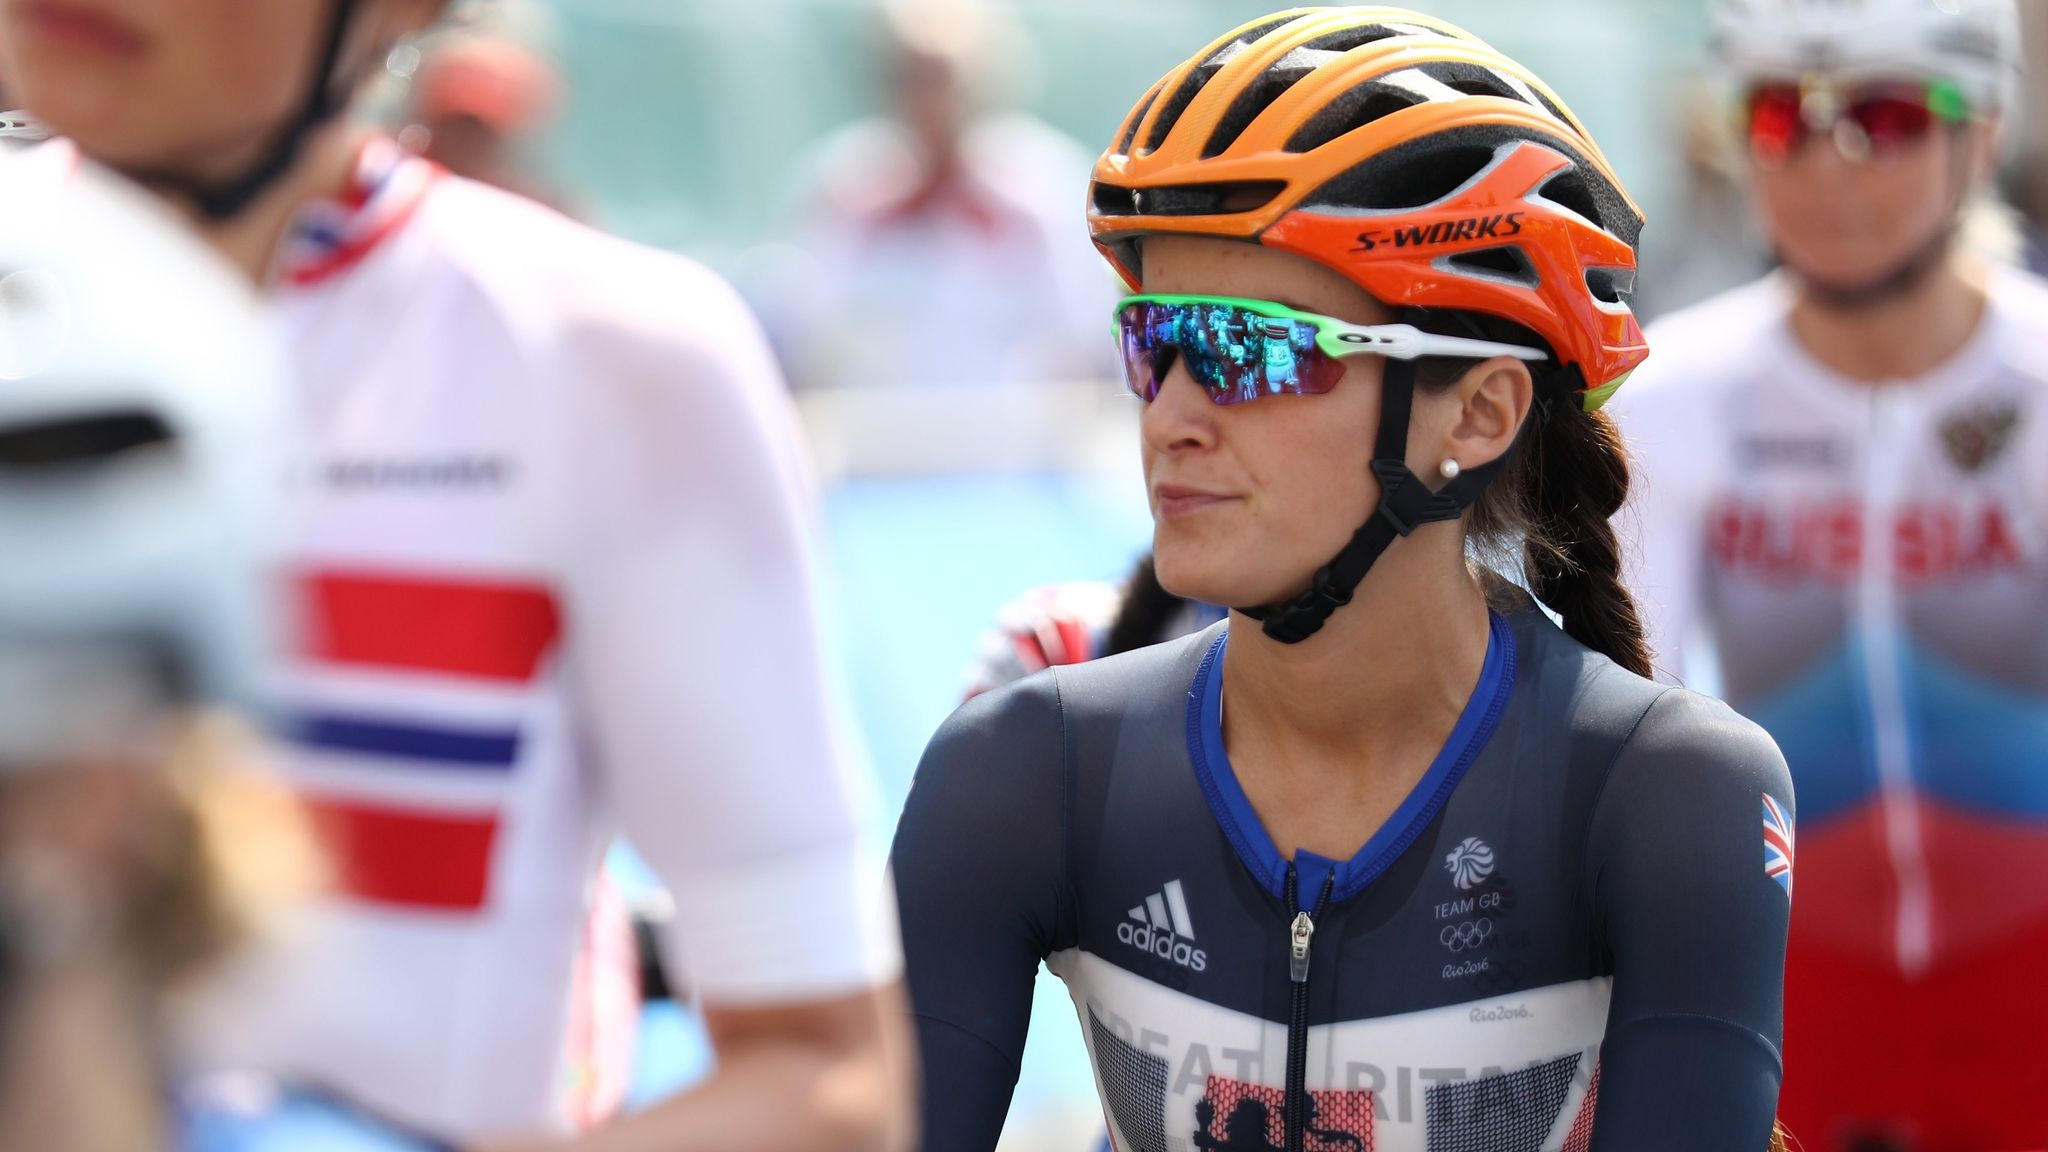 Sarah Storey setting sights on World Championships after 13th Olympic gold